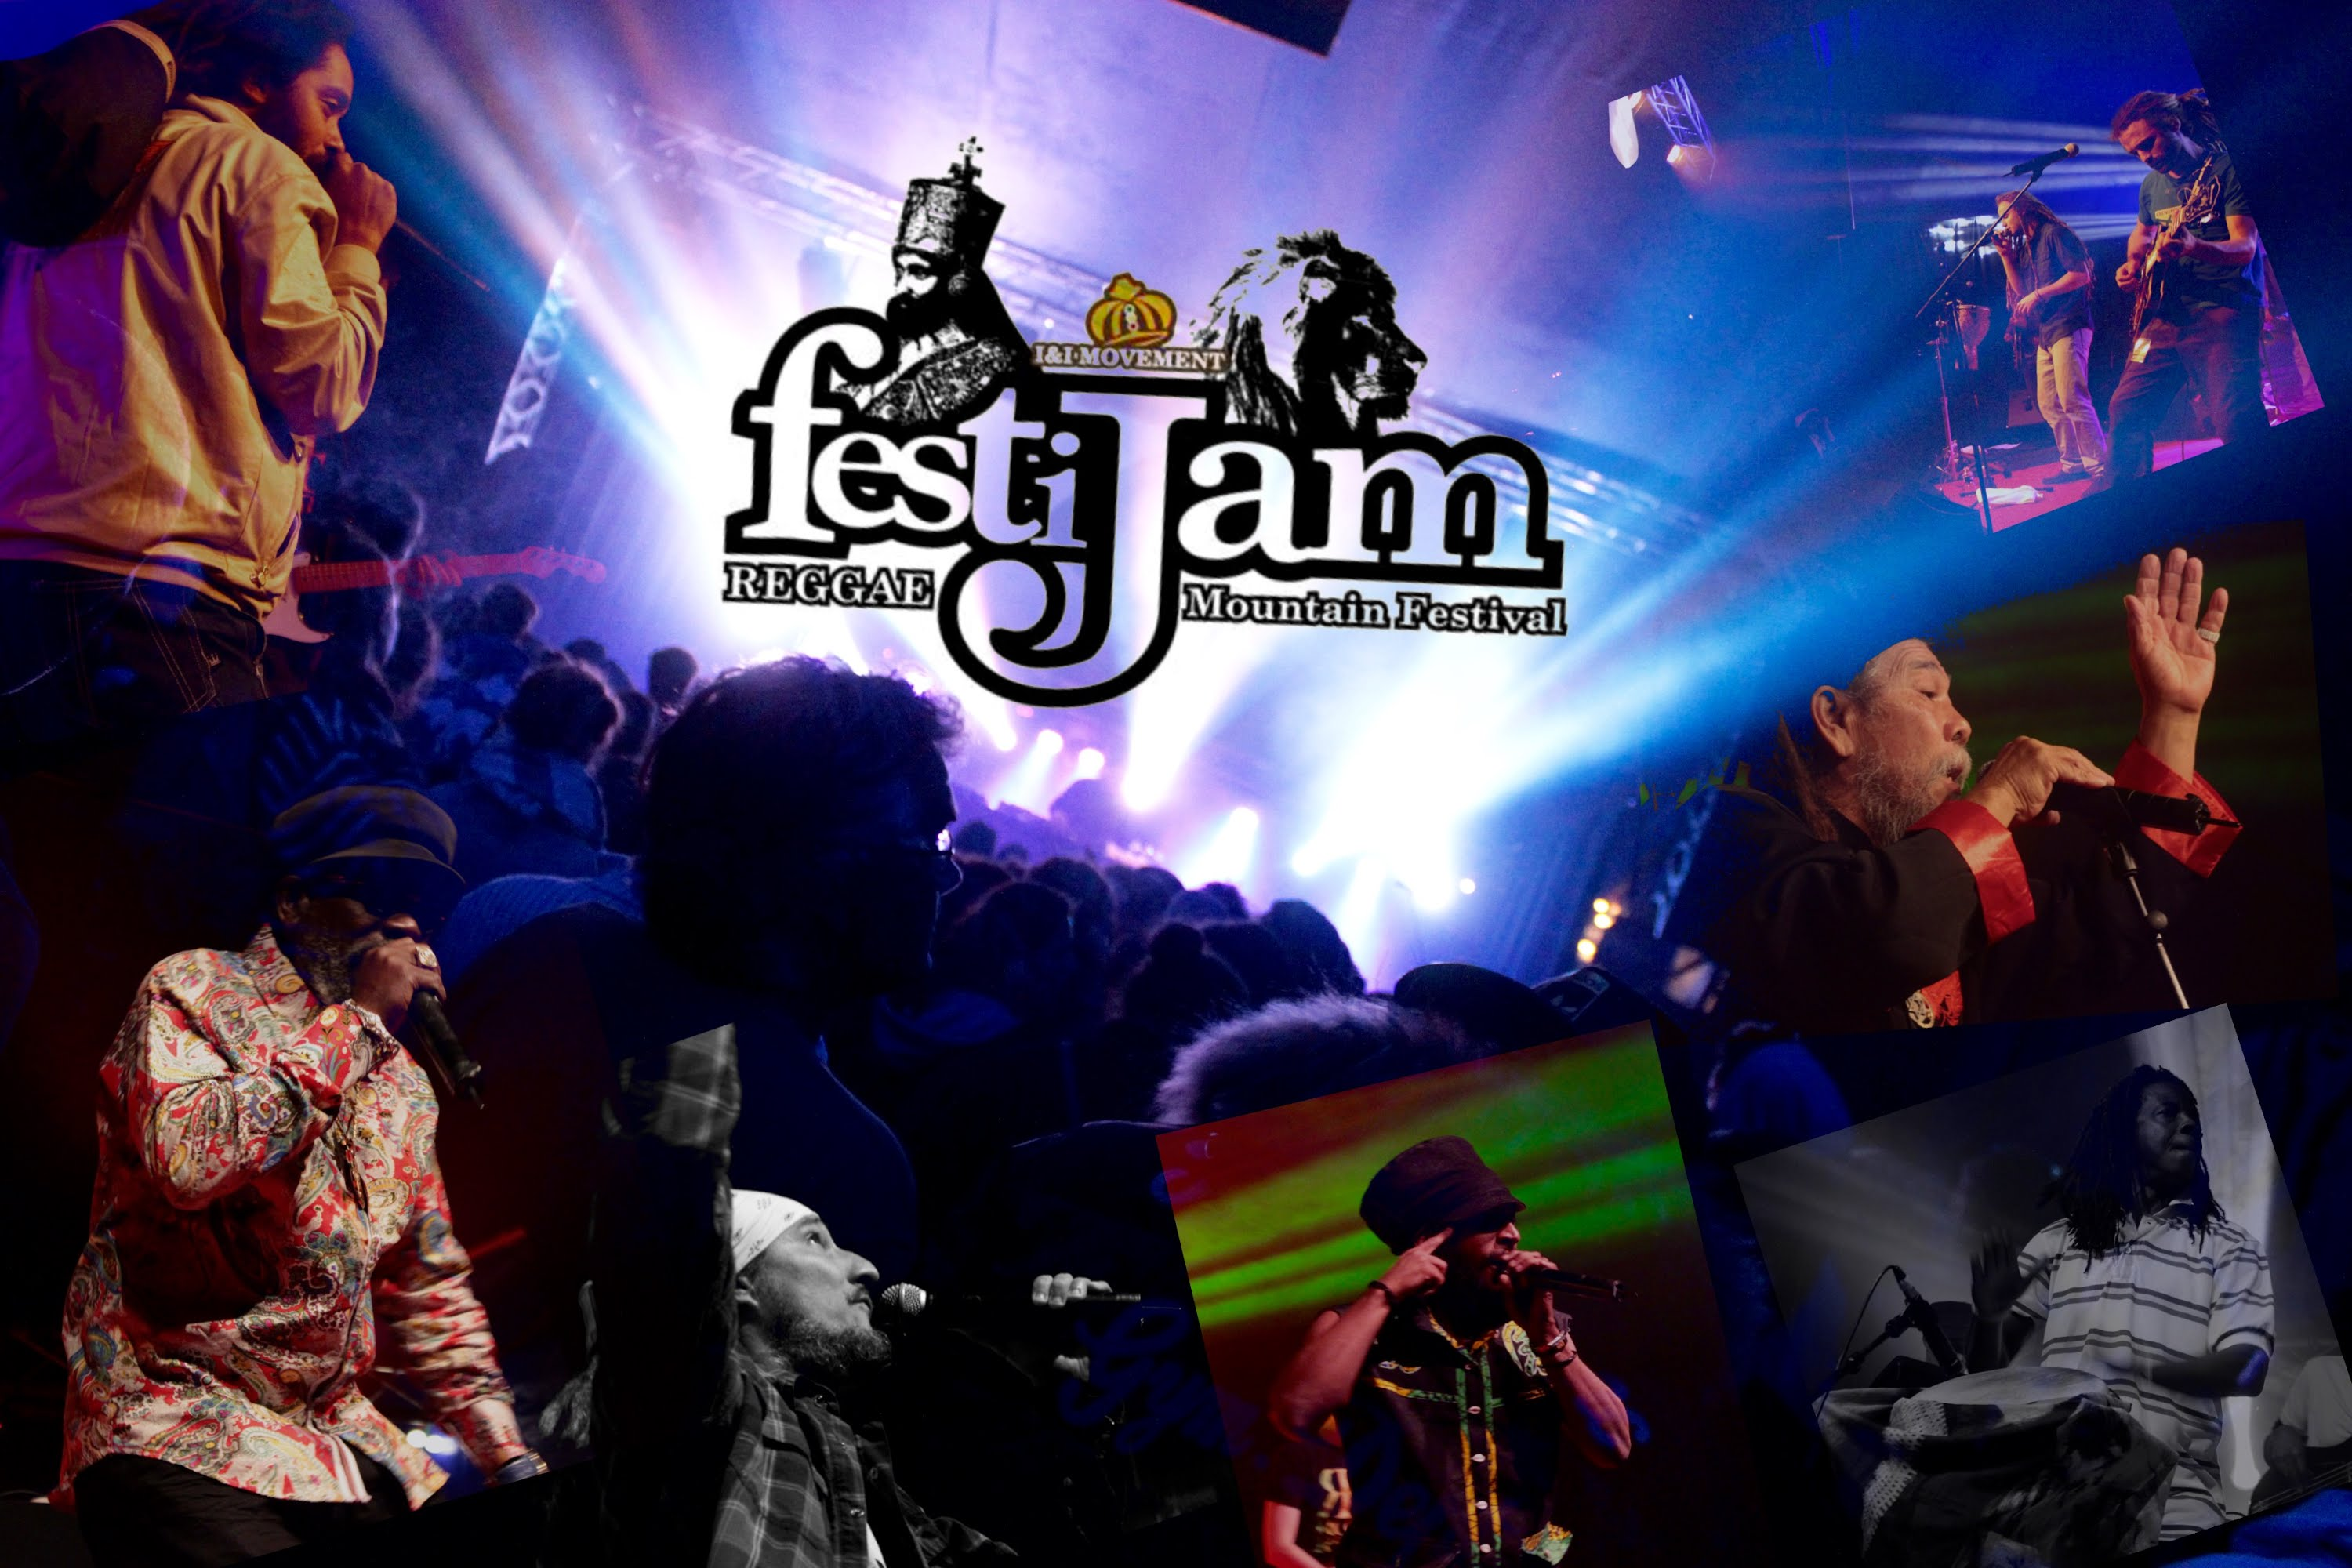 Highlights @ Festijam 2015 [8/5/2015]